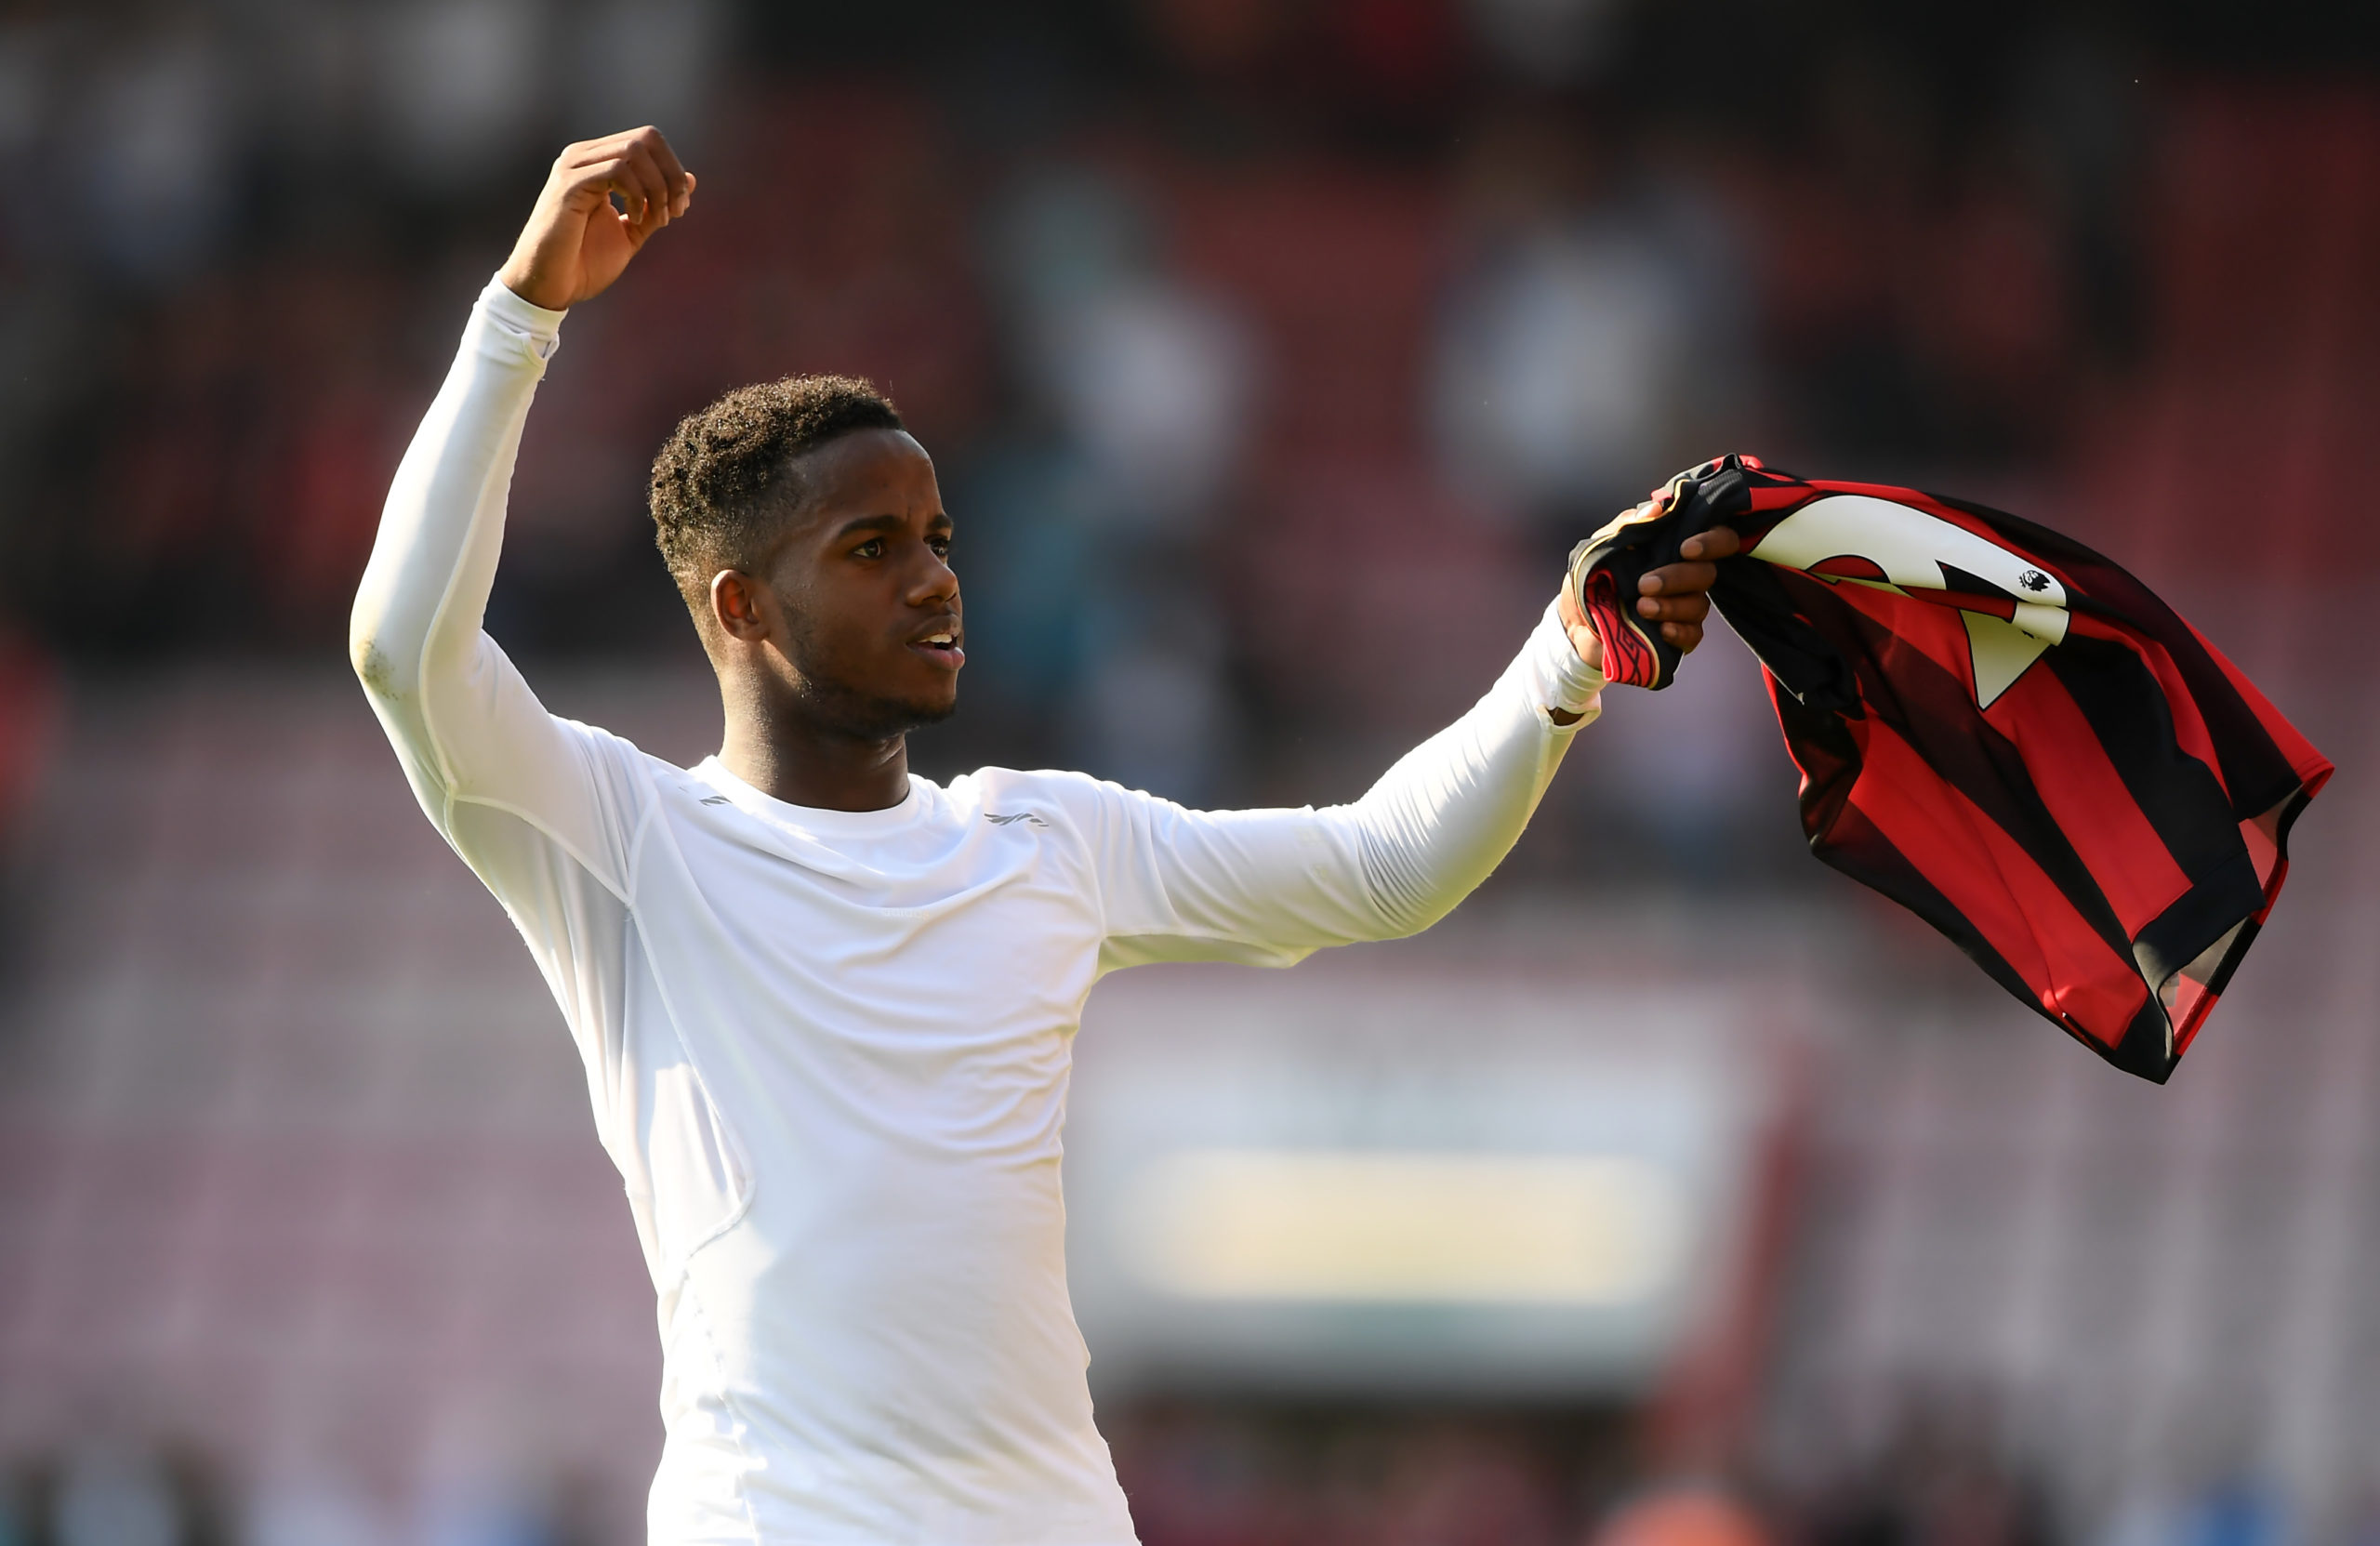 Celtic-linked Ryan Sessegnon